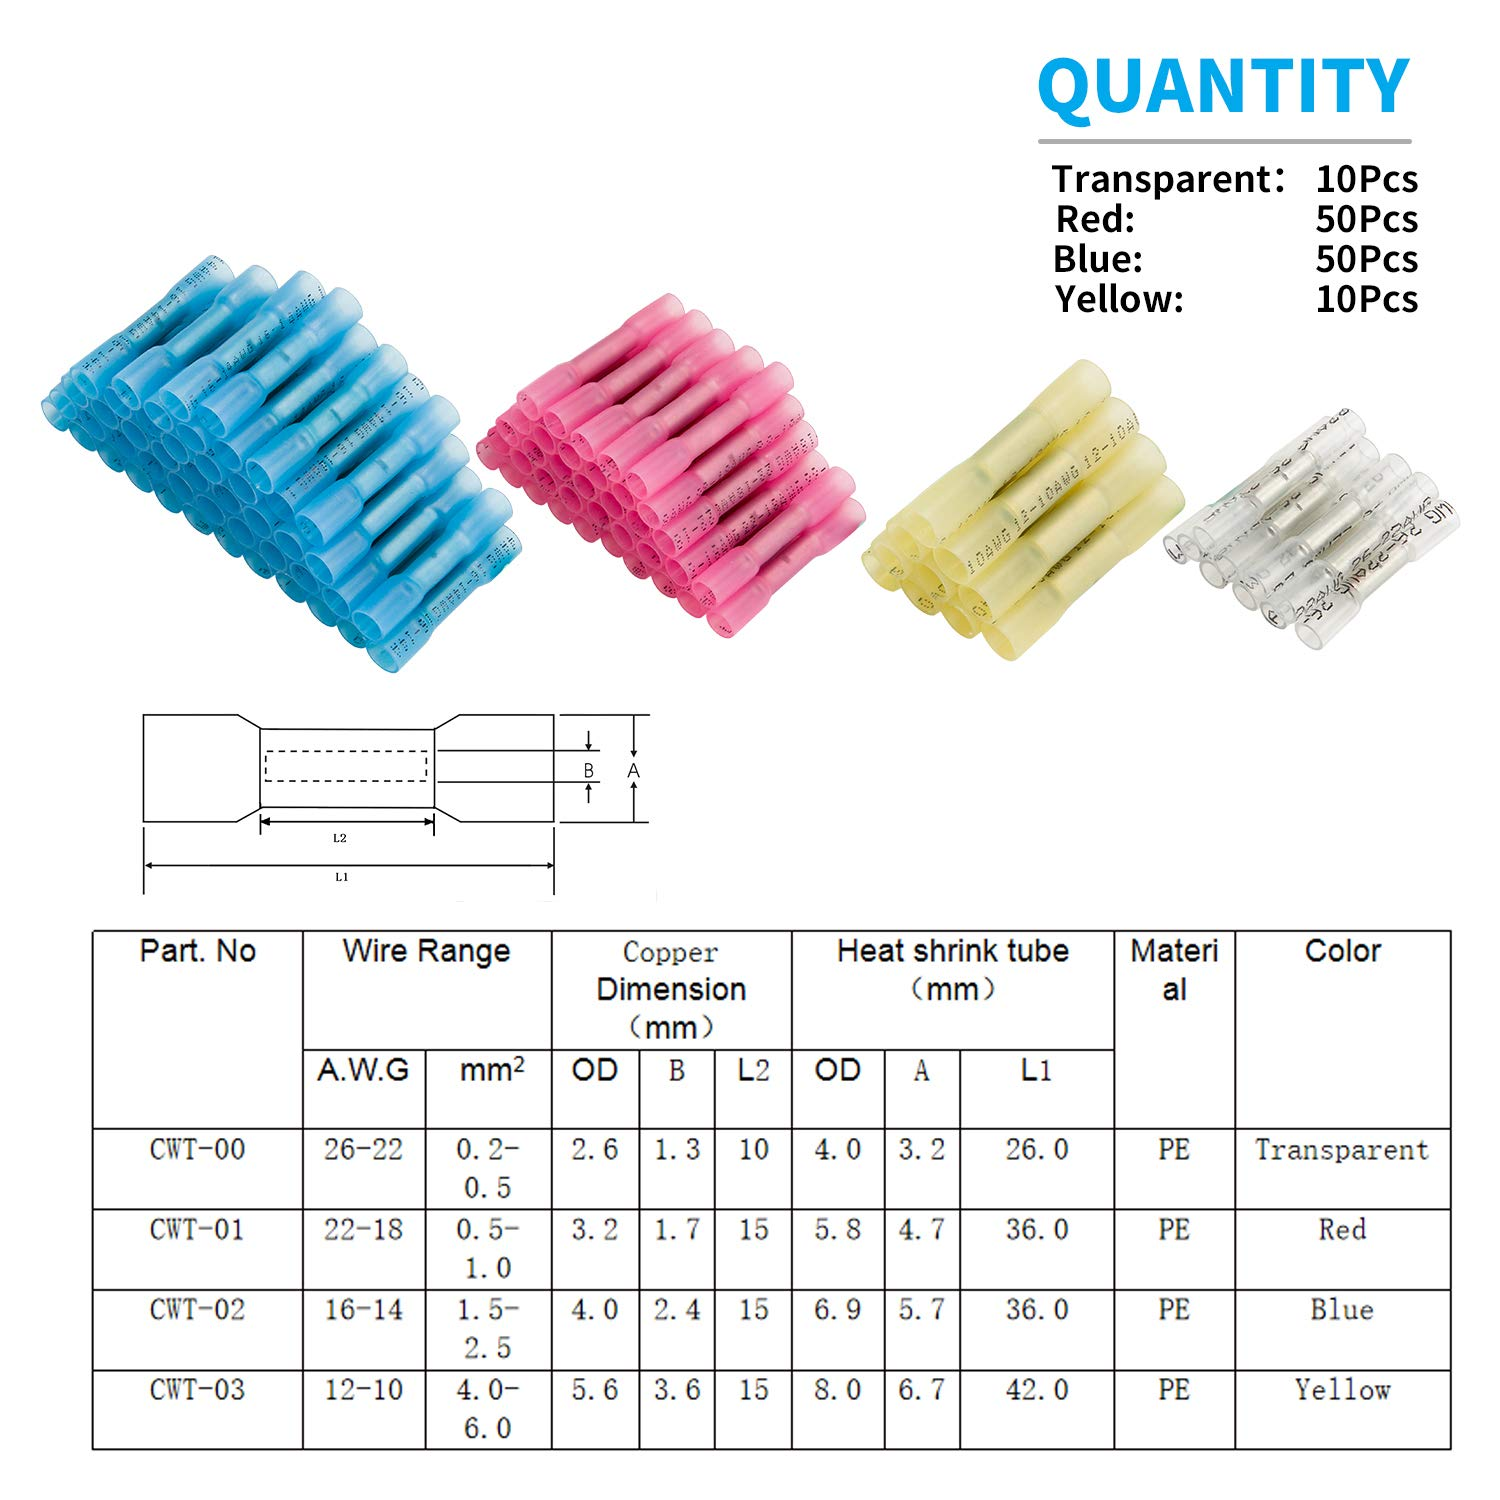 120Pcs Heat Shrink Butt Connectors Waterproof Insulated Butt Splice Terminal for Marine Automotive Boat Motorcycle Truck Trailer Wire Joint Kuject Electrical Crimp Heat Shrink Wire Connector Kit